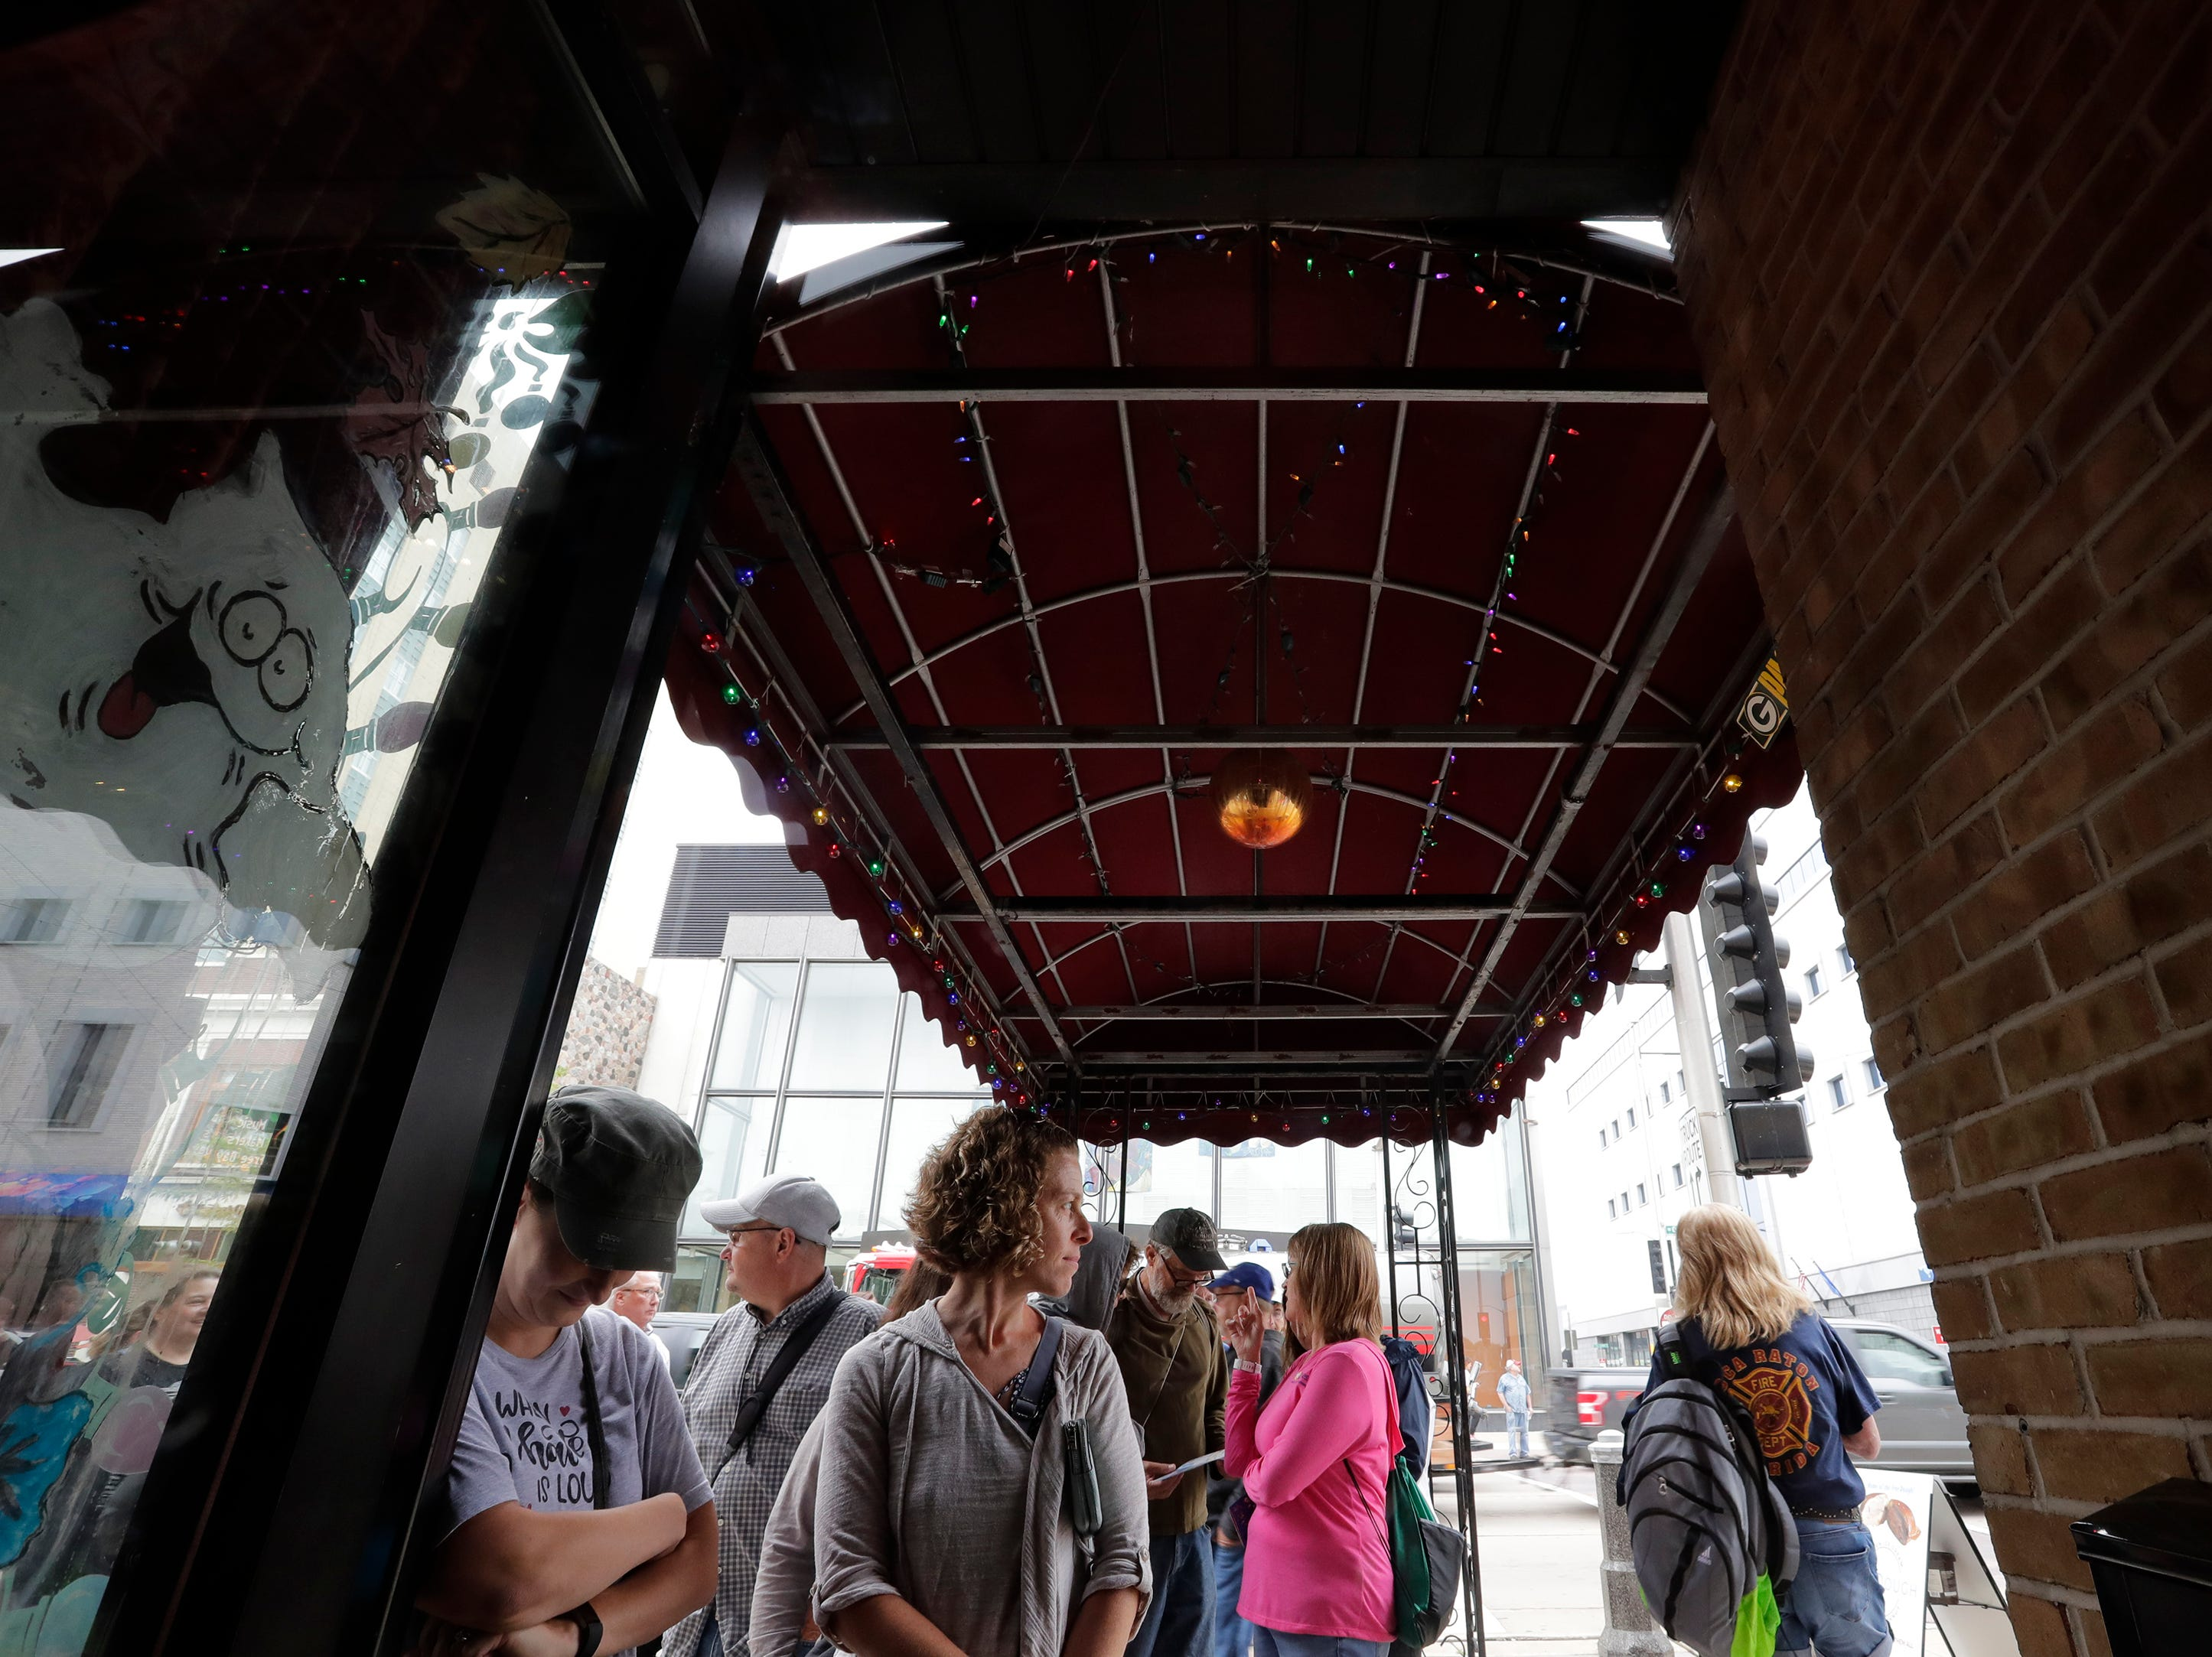 Music fans wait in line to here a performance at Cleo's Brown Beam Tavren during the Mile of Music Thursday, August 2, 2018, in Appleton, Wis.  